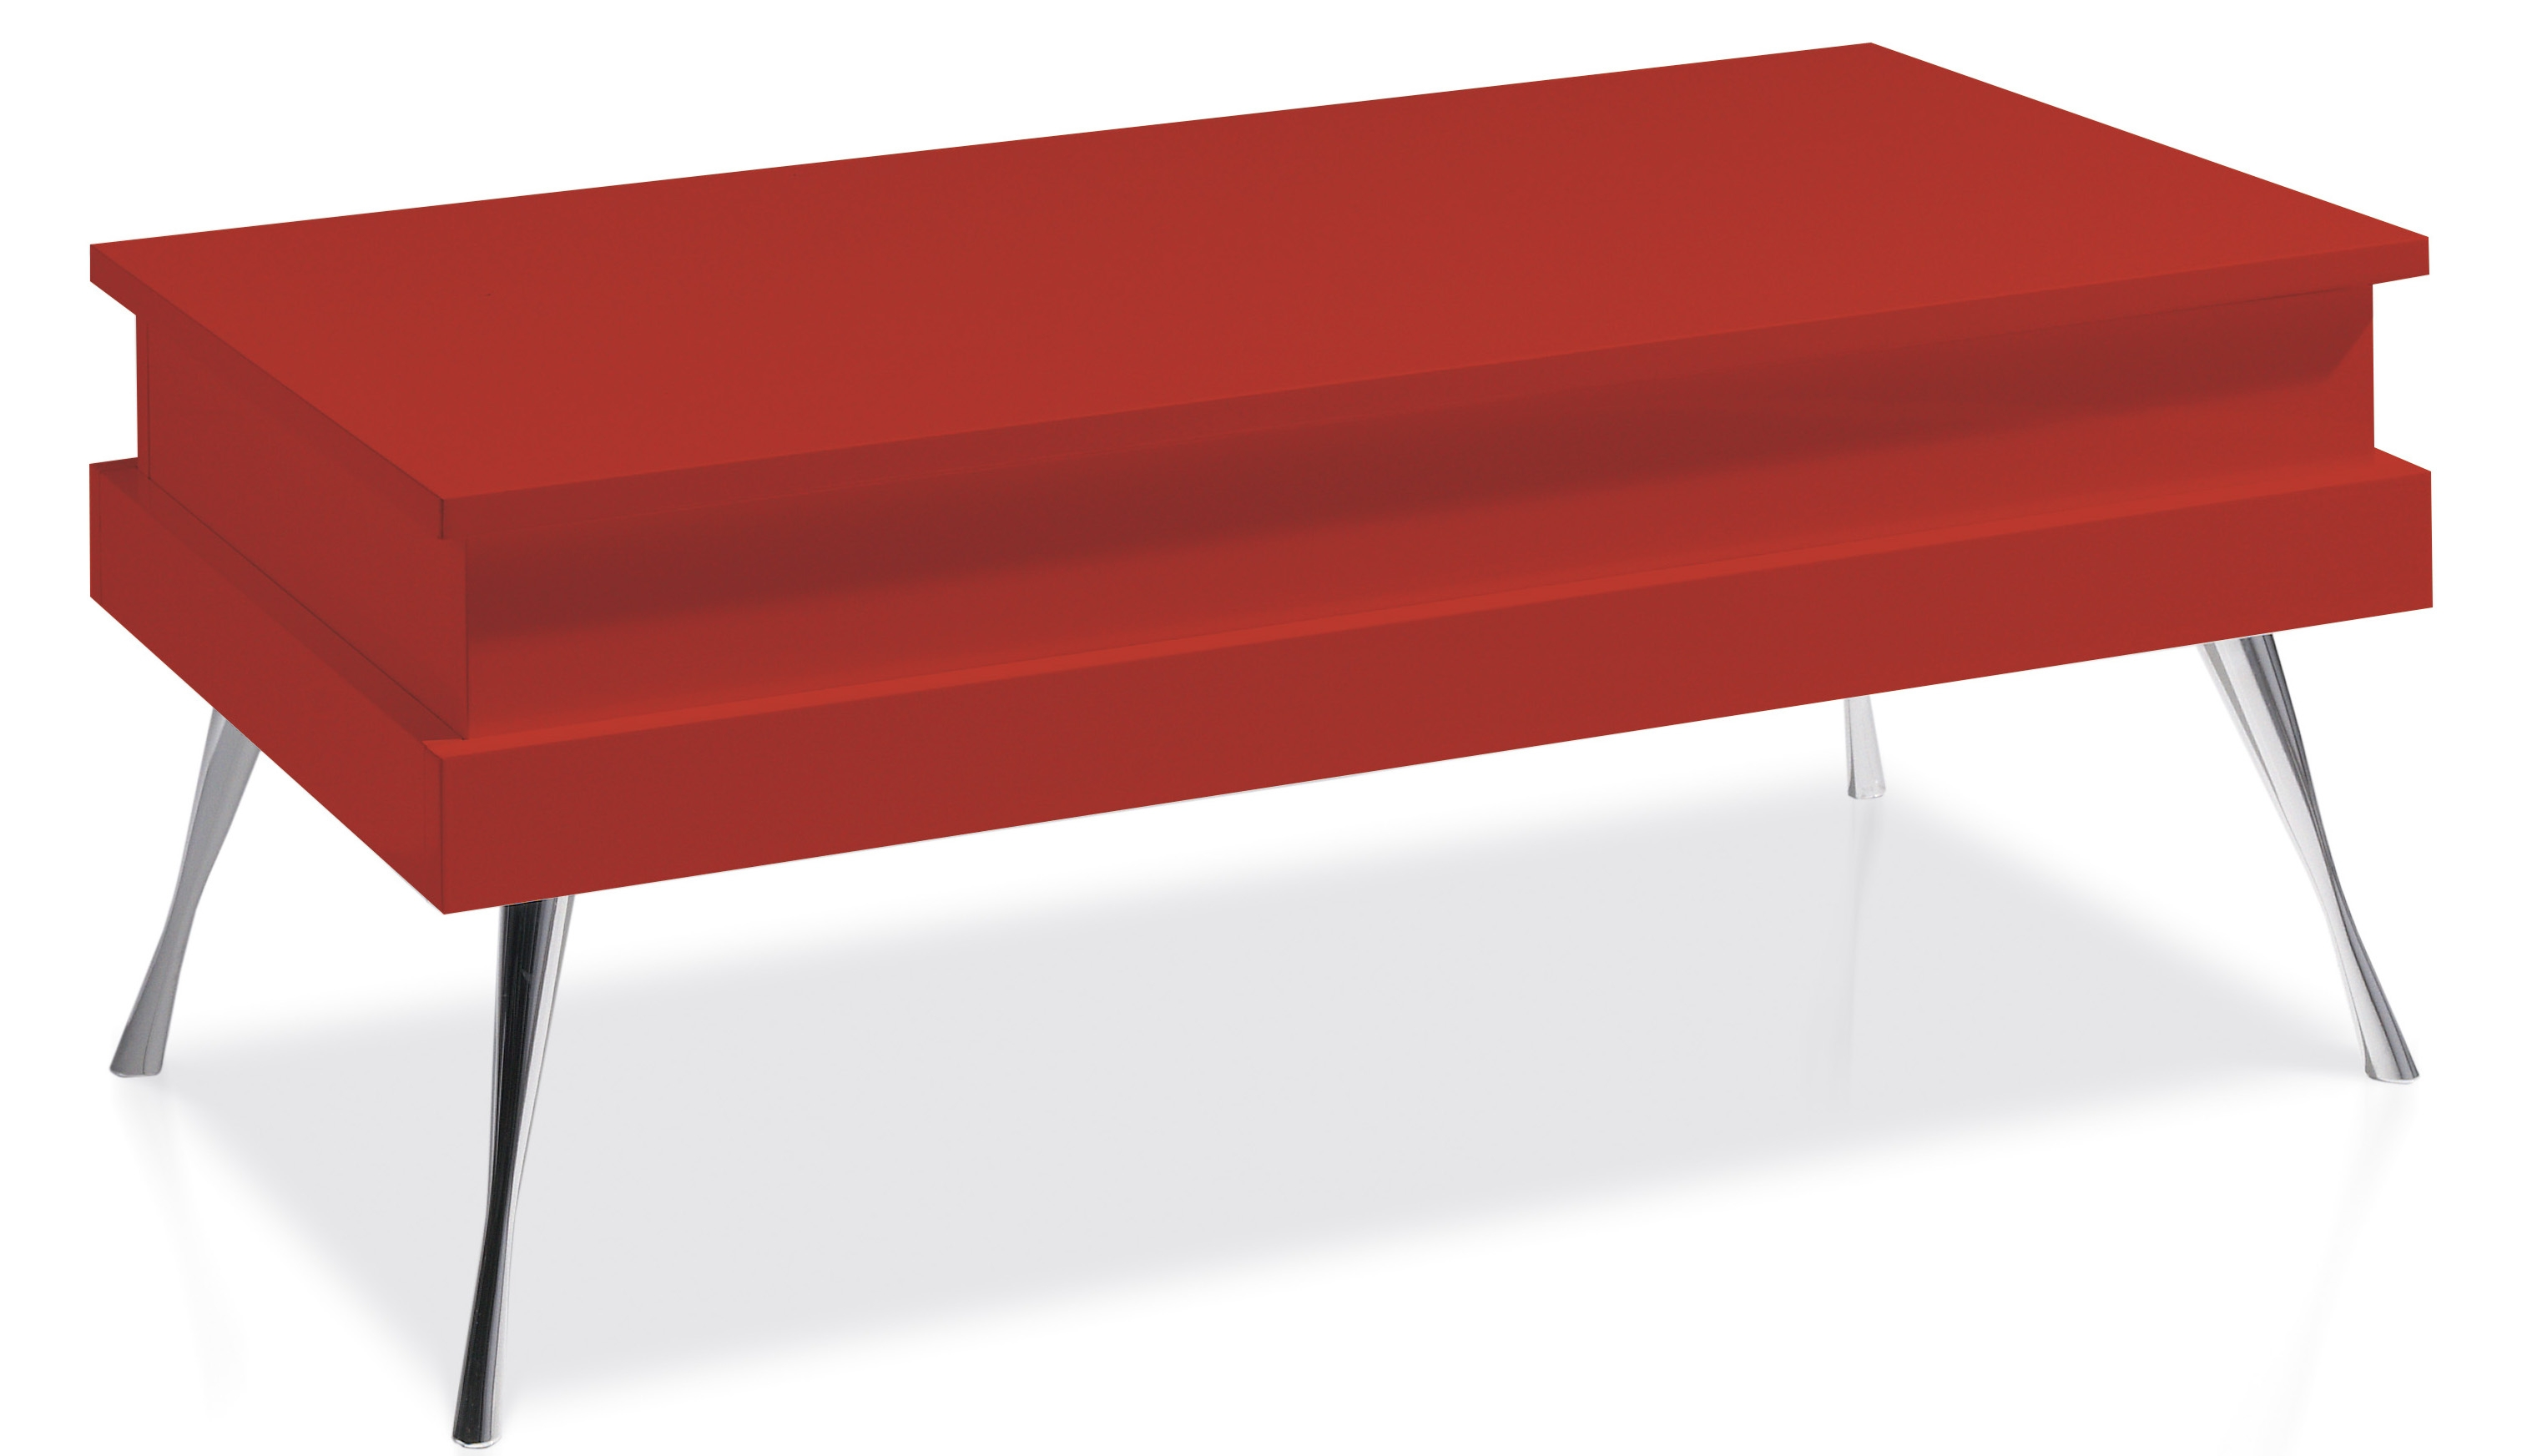 Table basse relevable laqu e rouge pied acier chrom for Table basse rouge